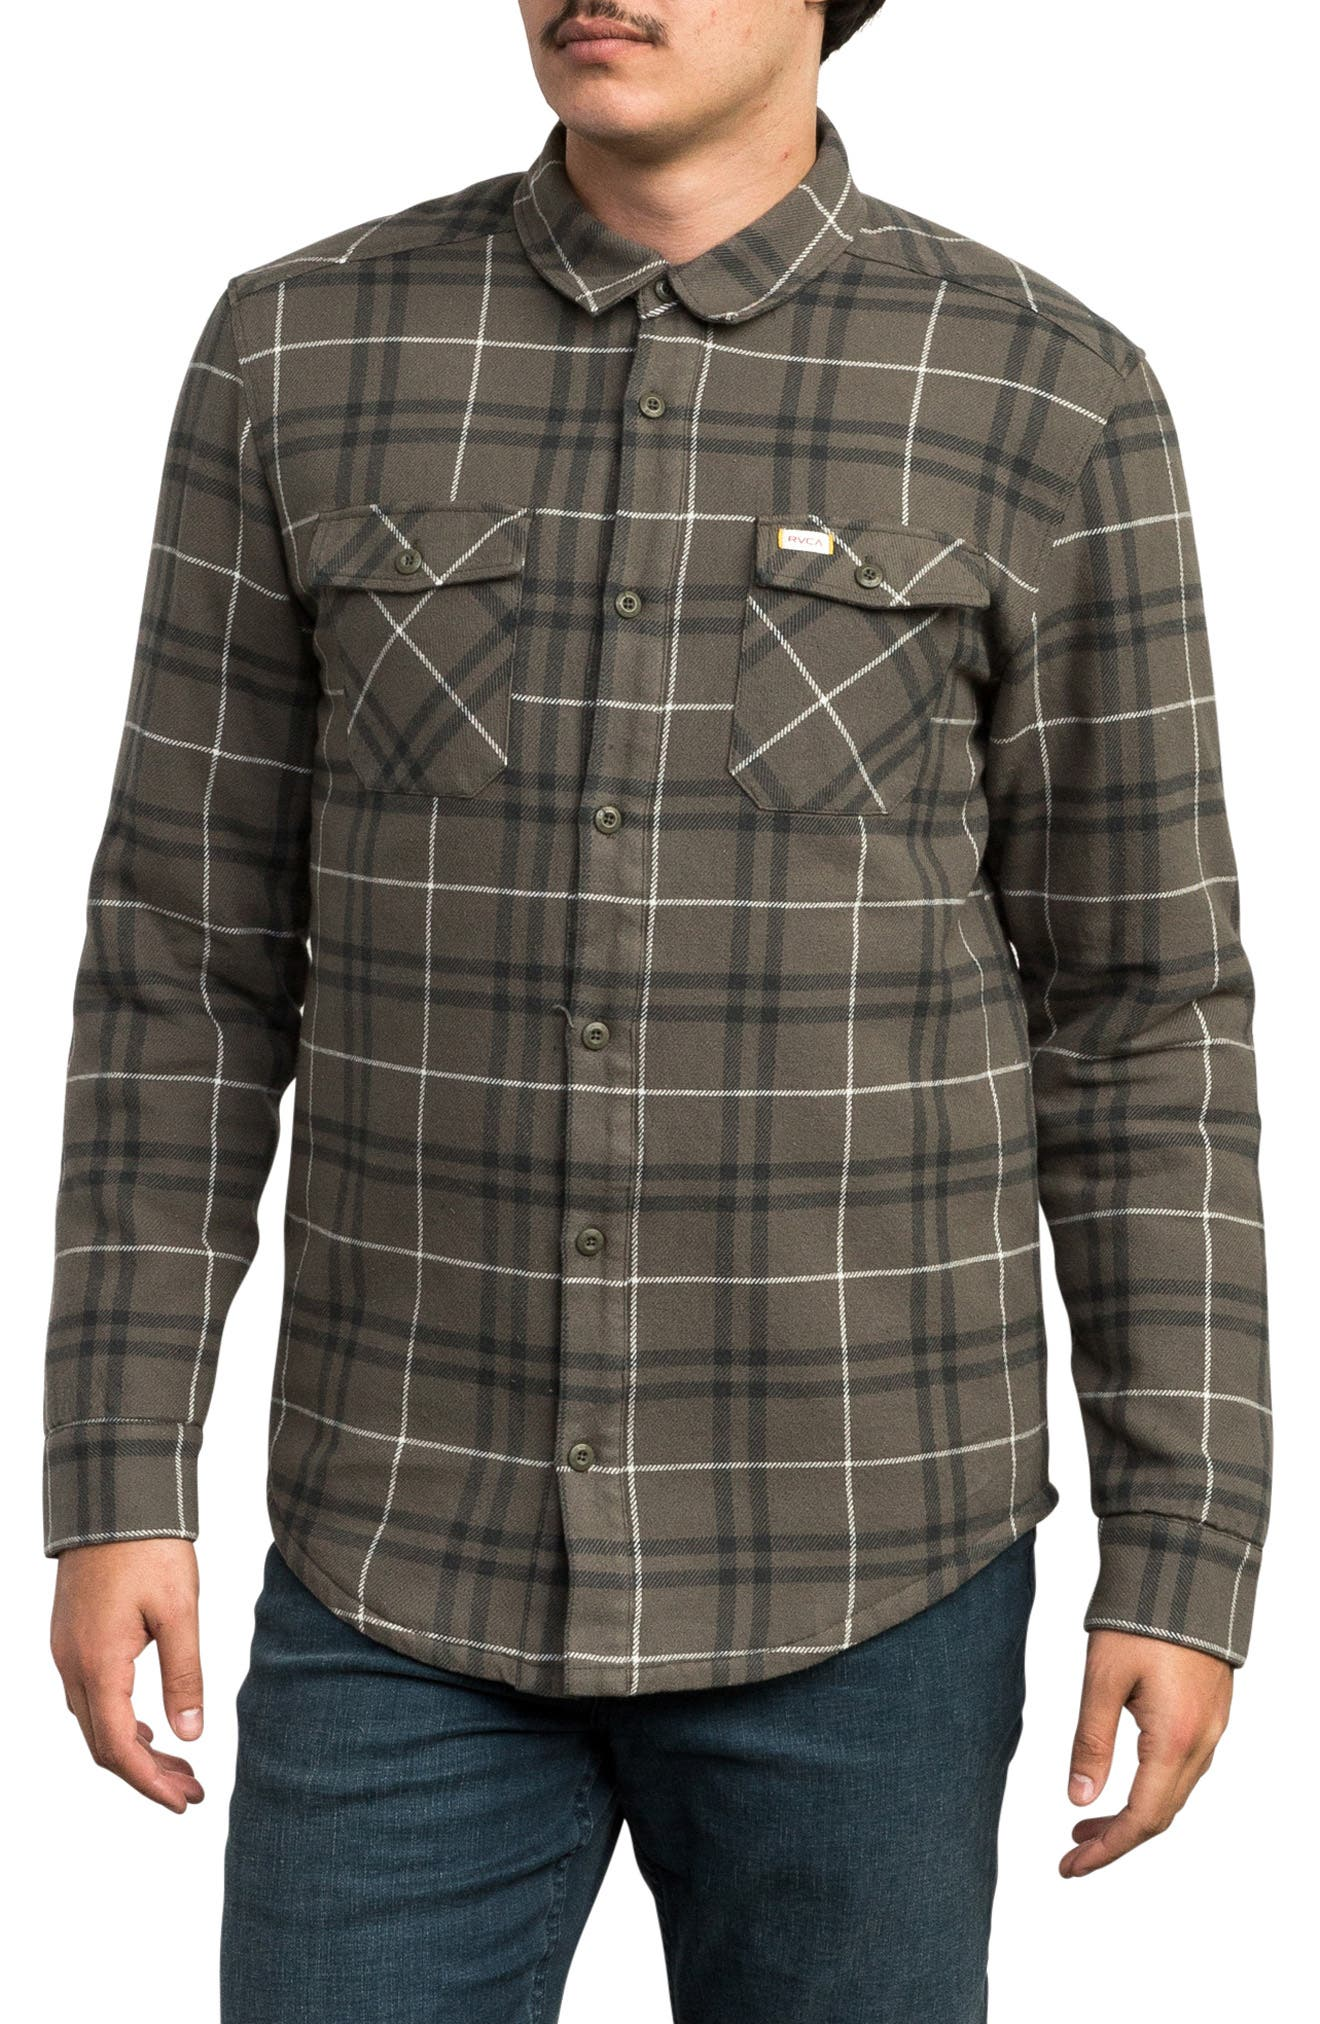 Andrew Reynolds Lined Plaid Shirt,                             Main thumbnail 1, color,                             OLIVE